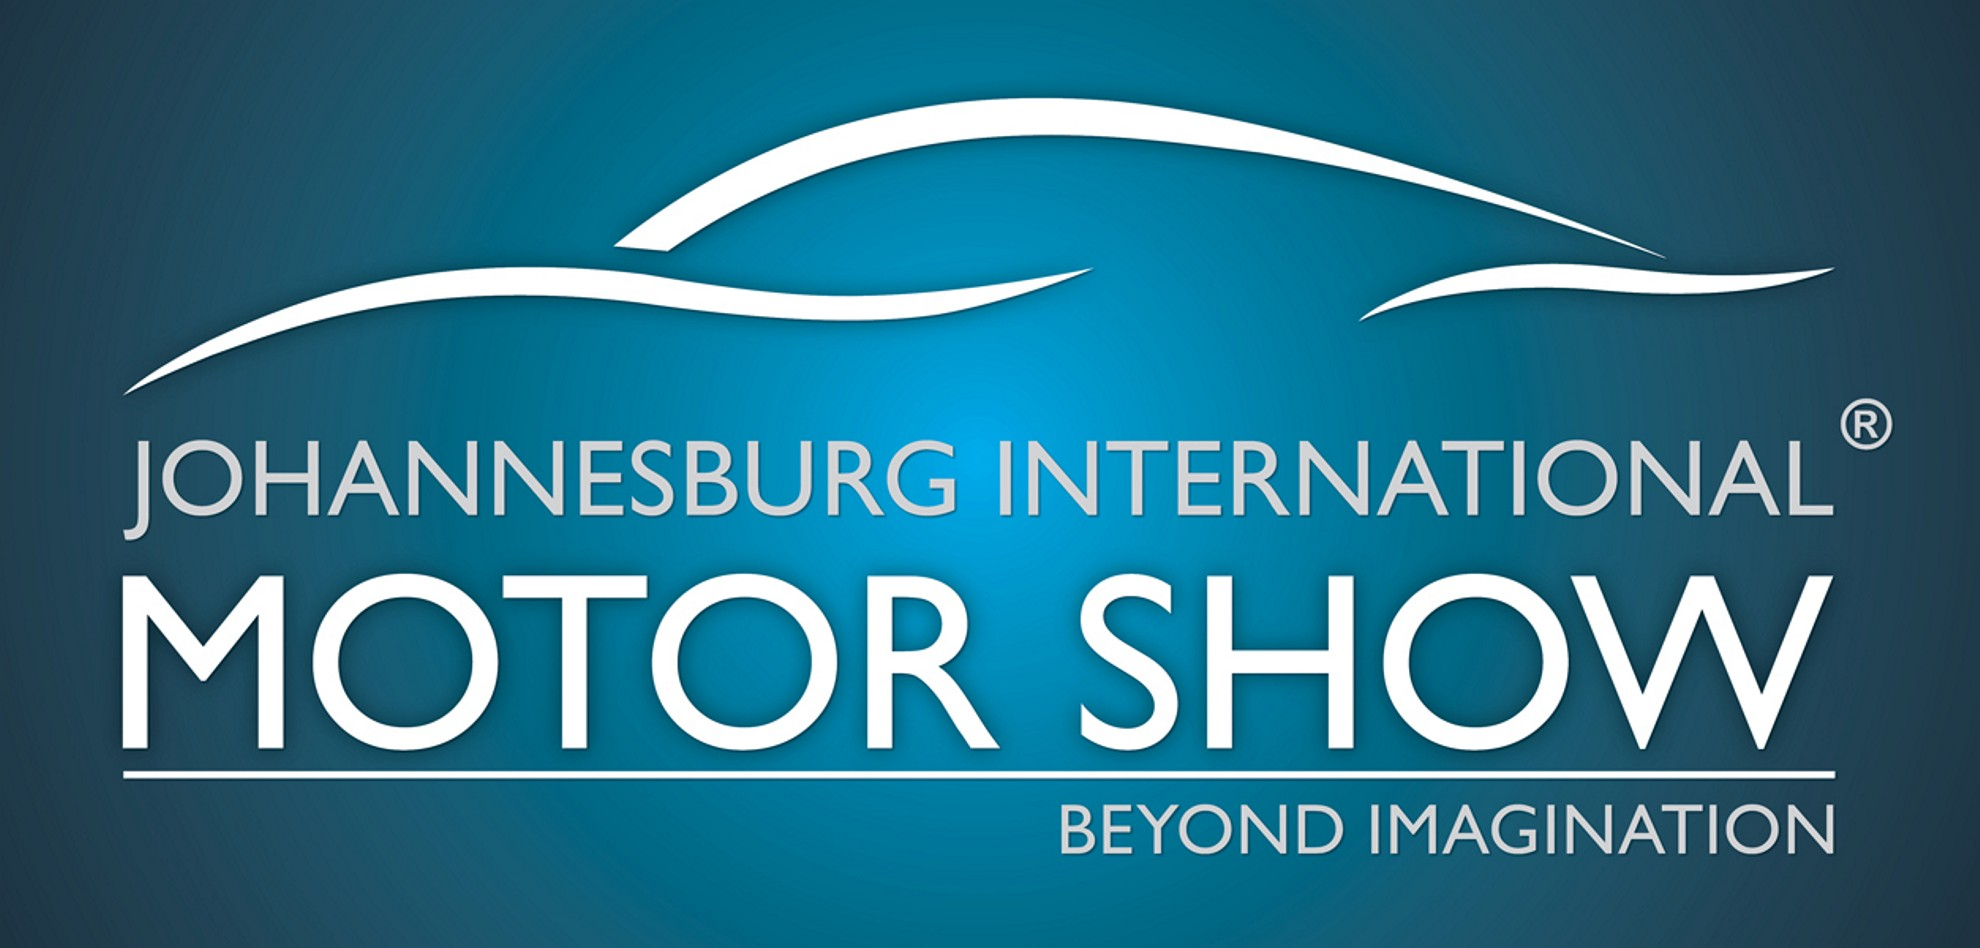 Johannesburg_International_Motor_Show